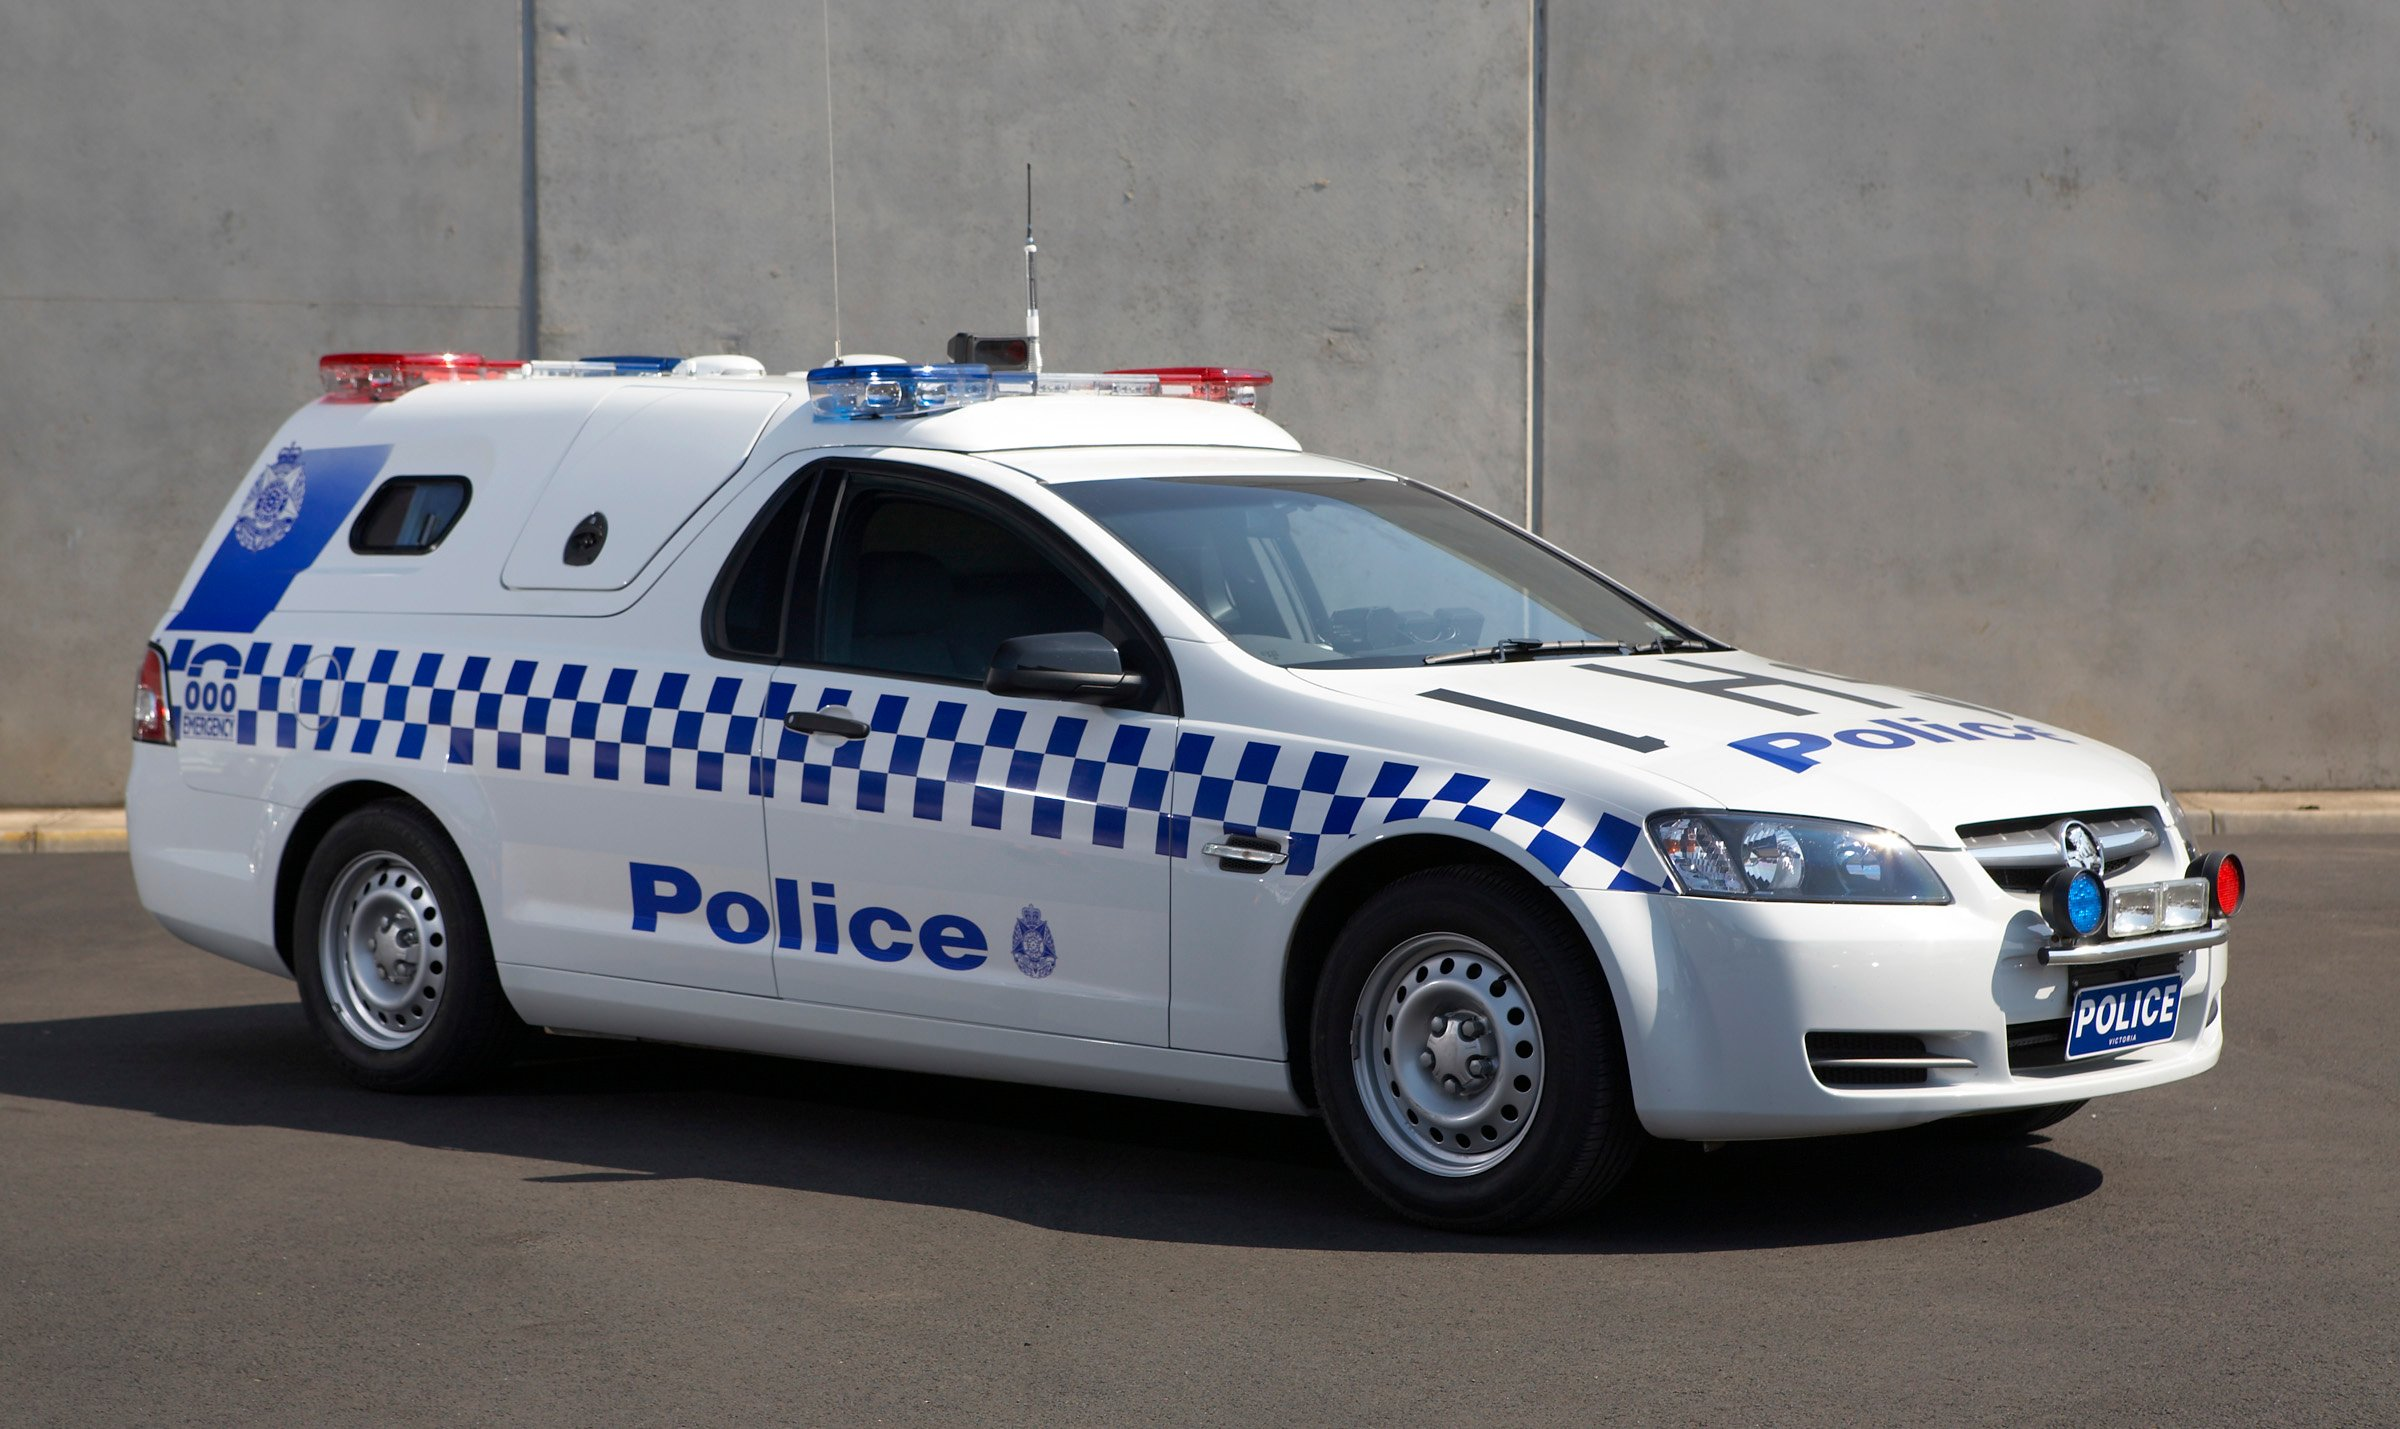 Subaru Older Models >> Holden launches new Divisional Van for Victoria Police - photos | CarAdvice